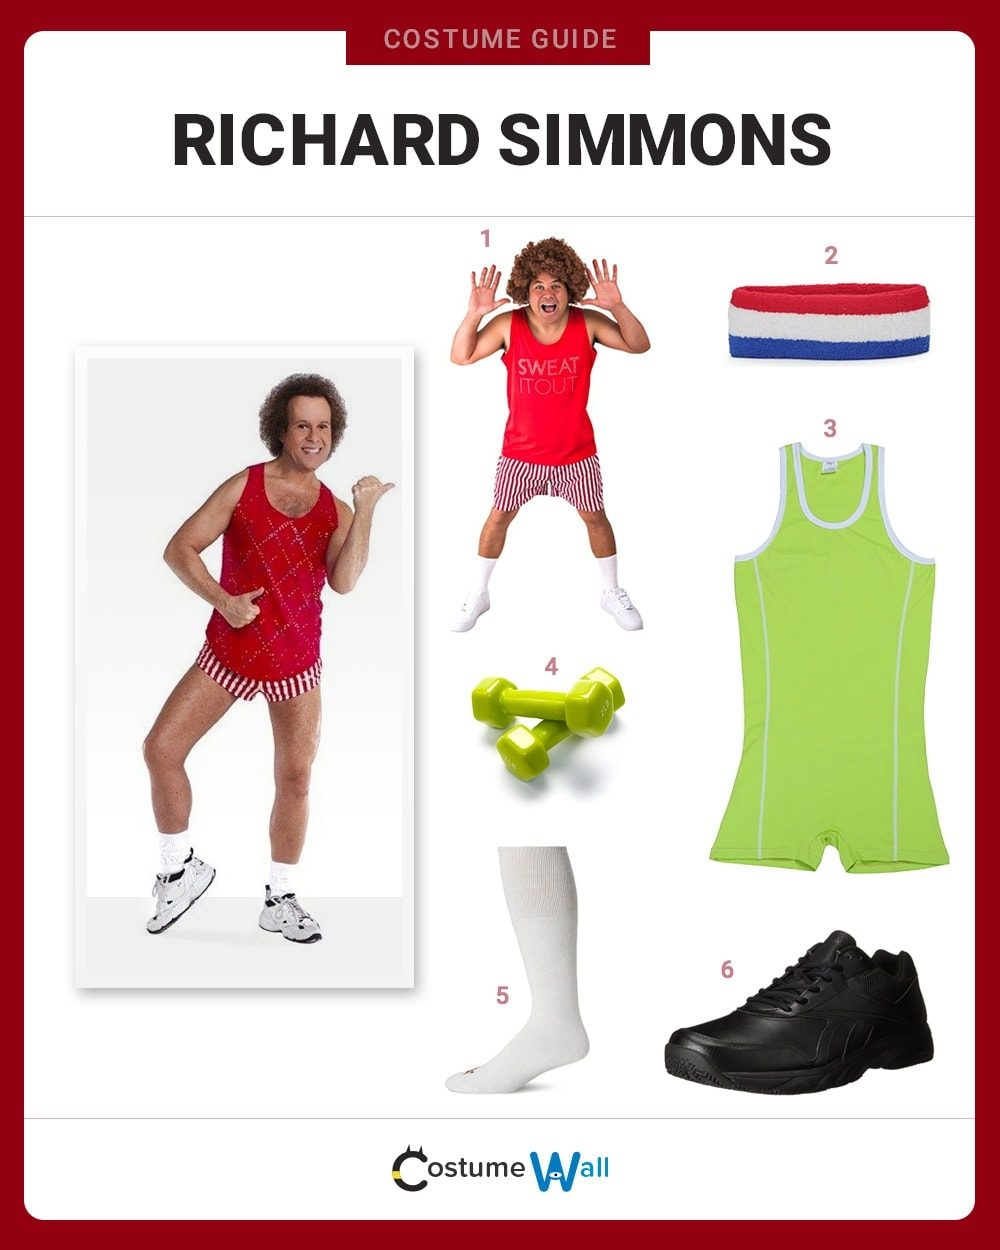 Richard Simmons Costume Guide